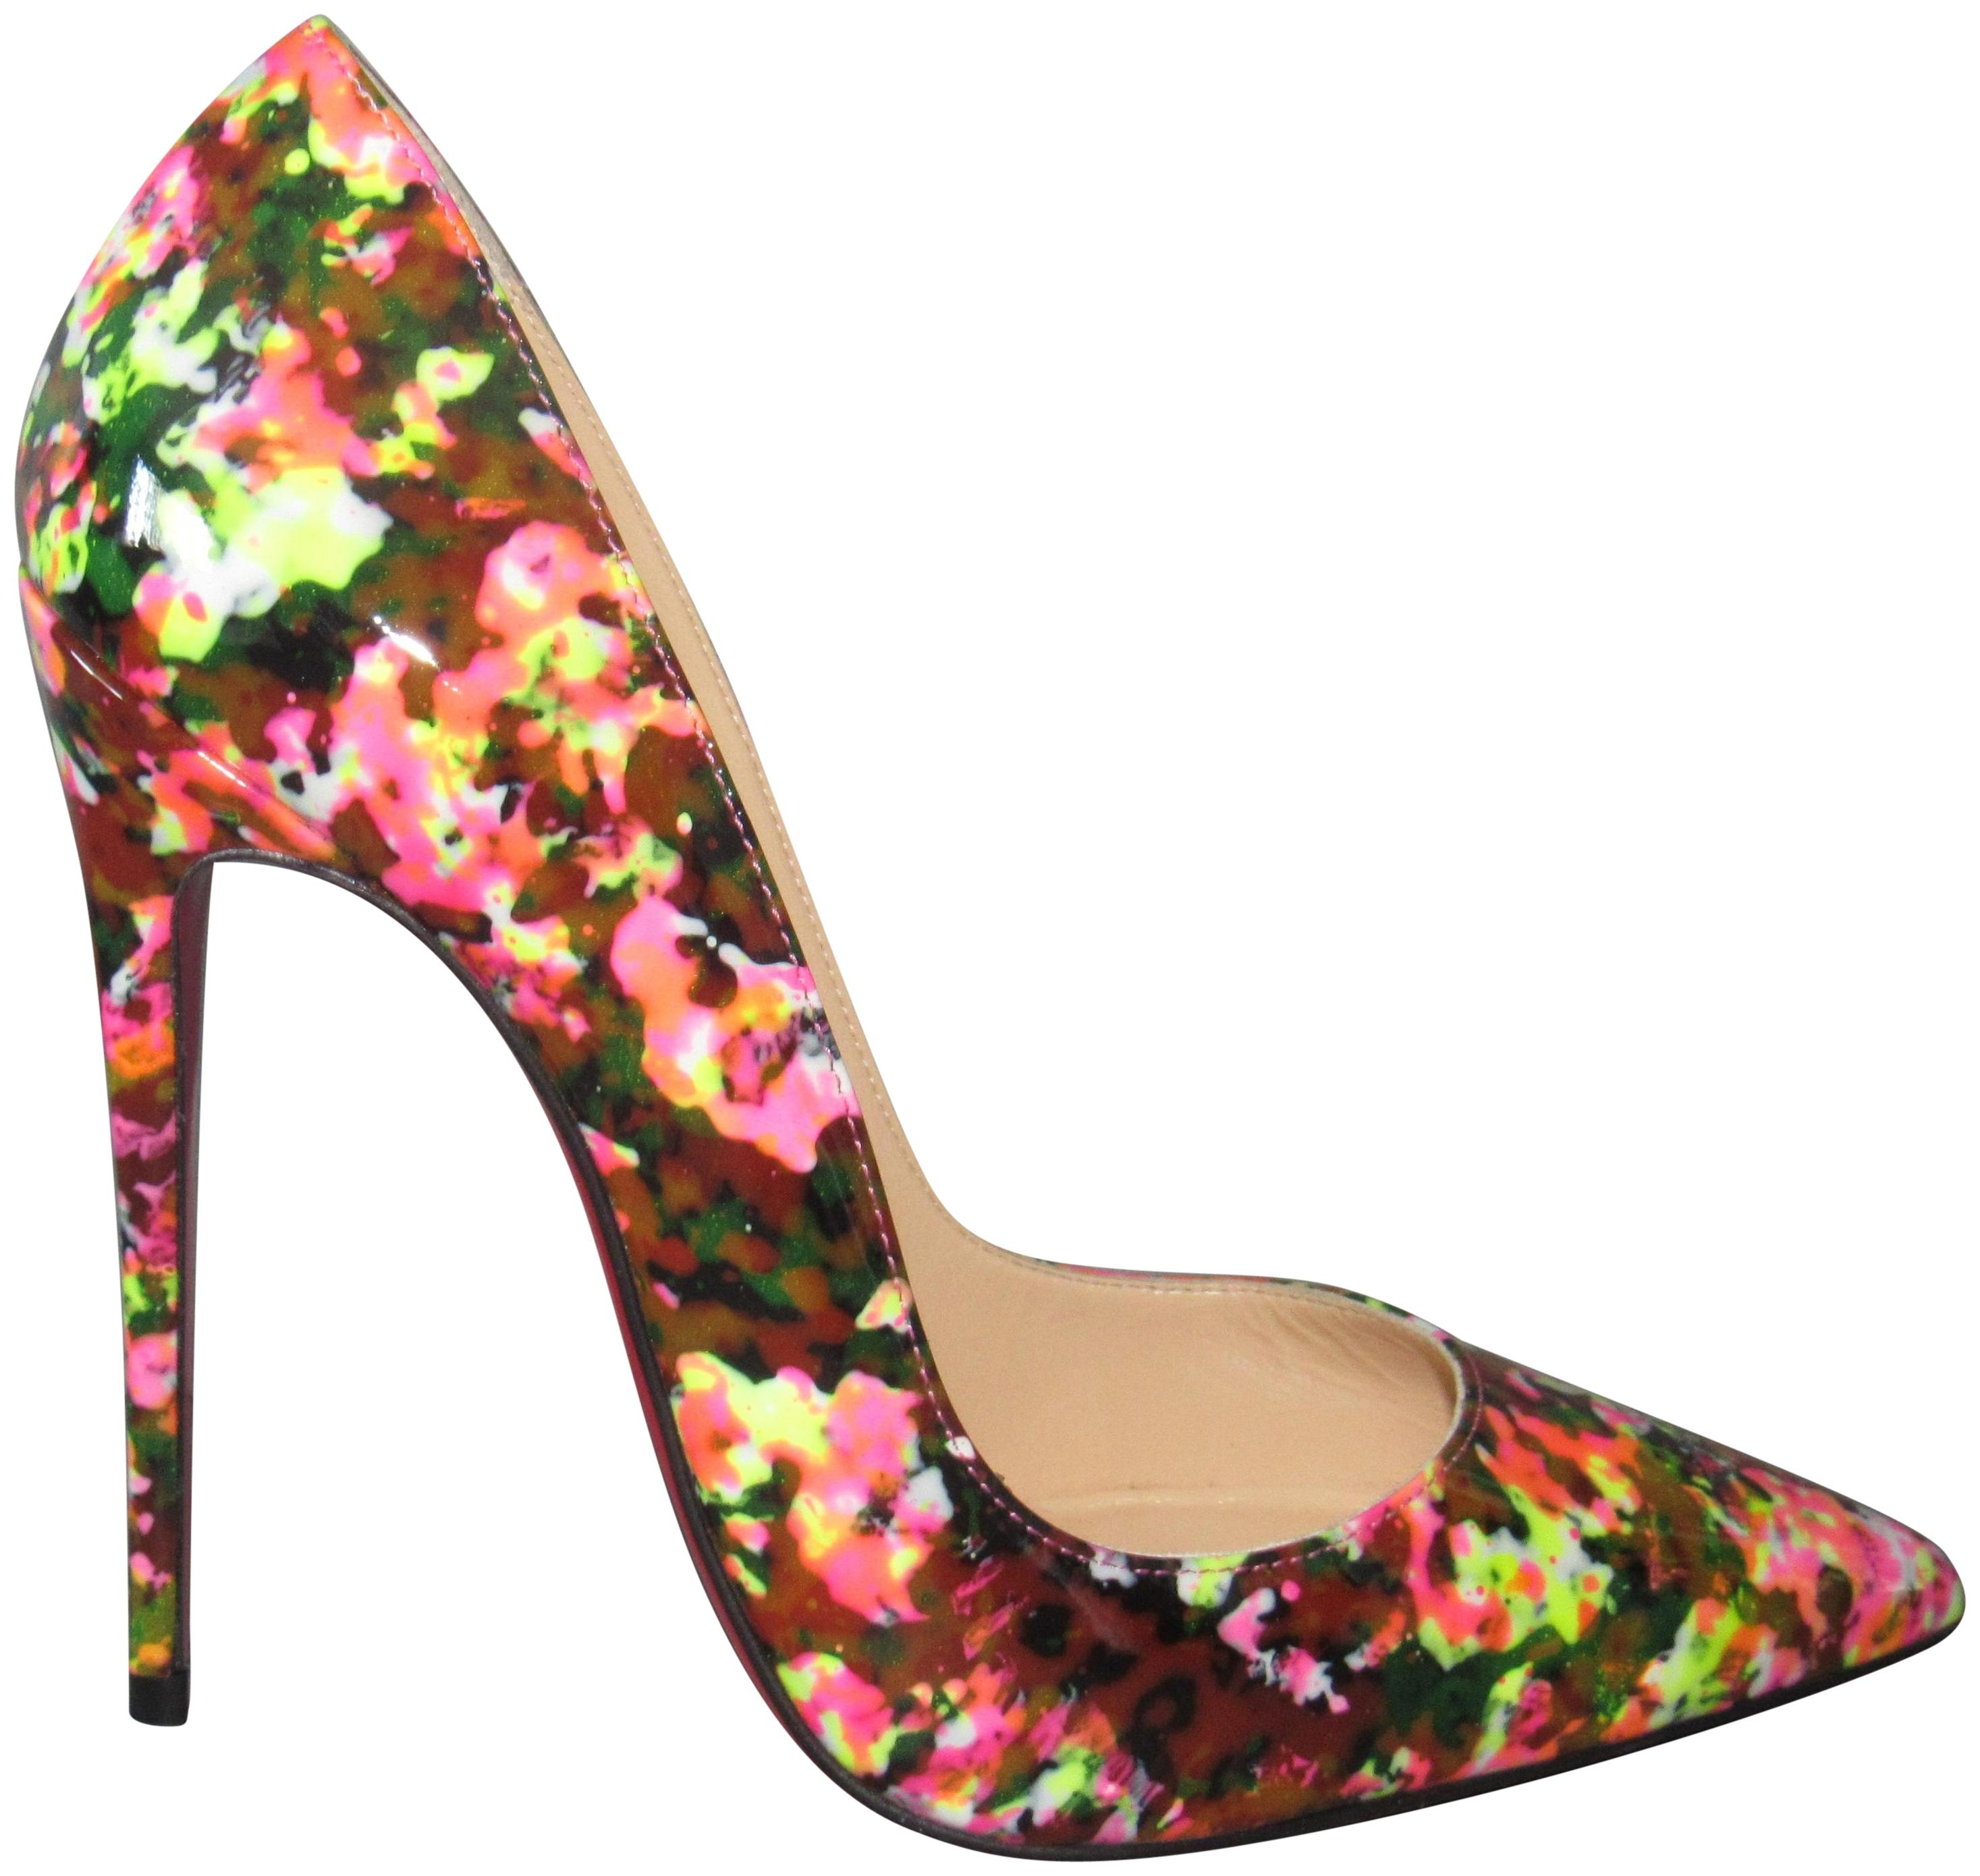 8739bfb0f9b1 Christian Christian Christian Louboutin Multicolor Neon New So Kate 120  Granite Patent Leather Pumps Size EU 37.5 (Approx. US 7.5) Regular (M